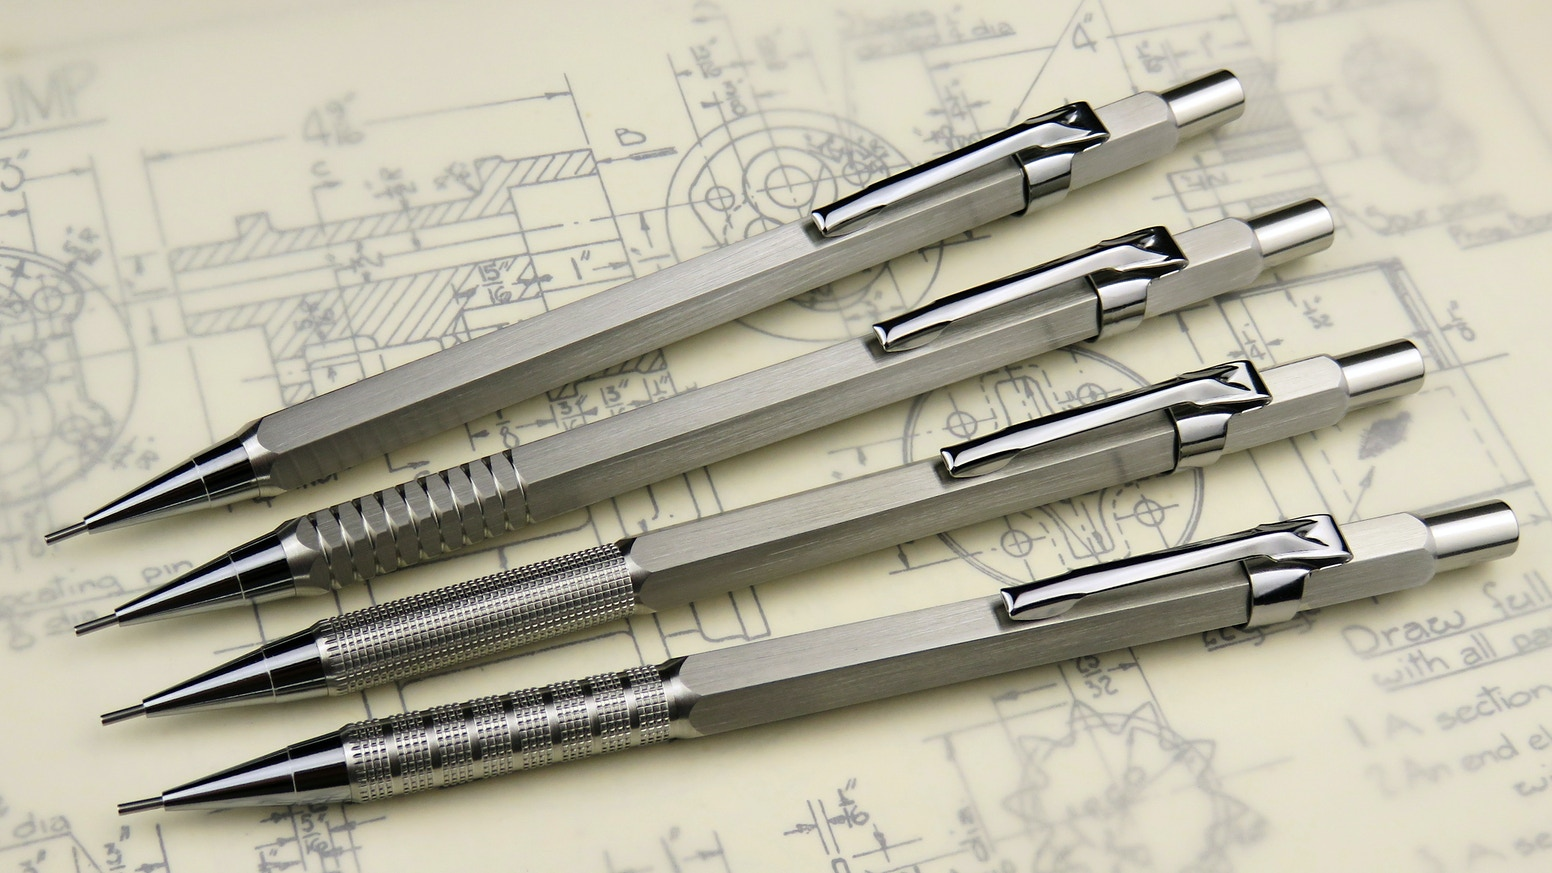 Handmade, all-metal mechanical pencil, designed to last a lifetime. Missed the Kickstarter? Don't worry! You can buy the pencils by clicking below.